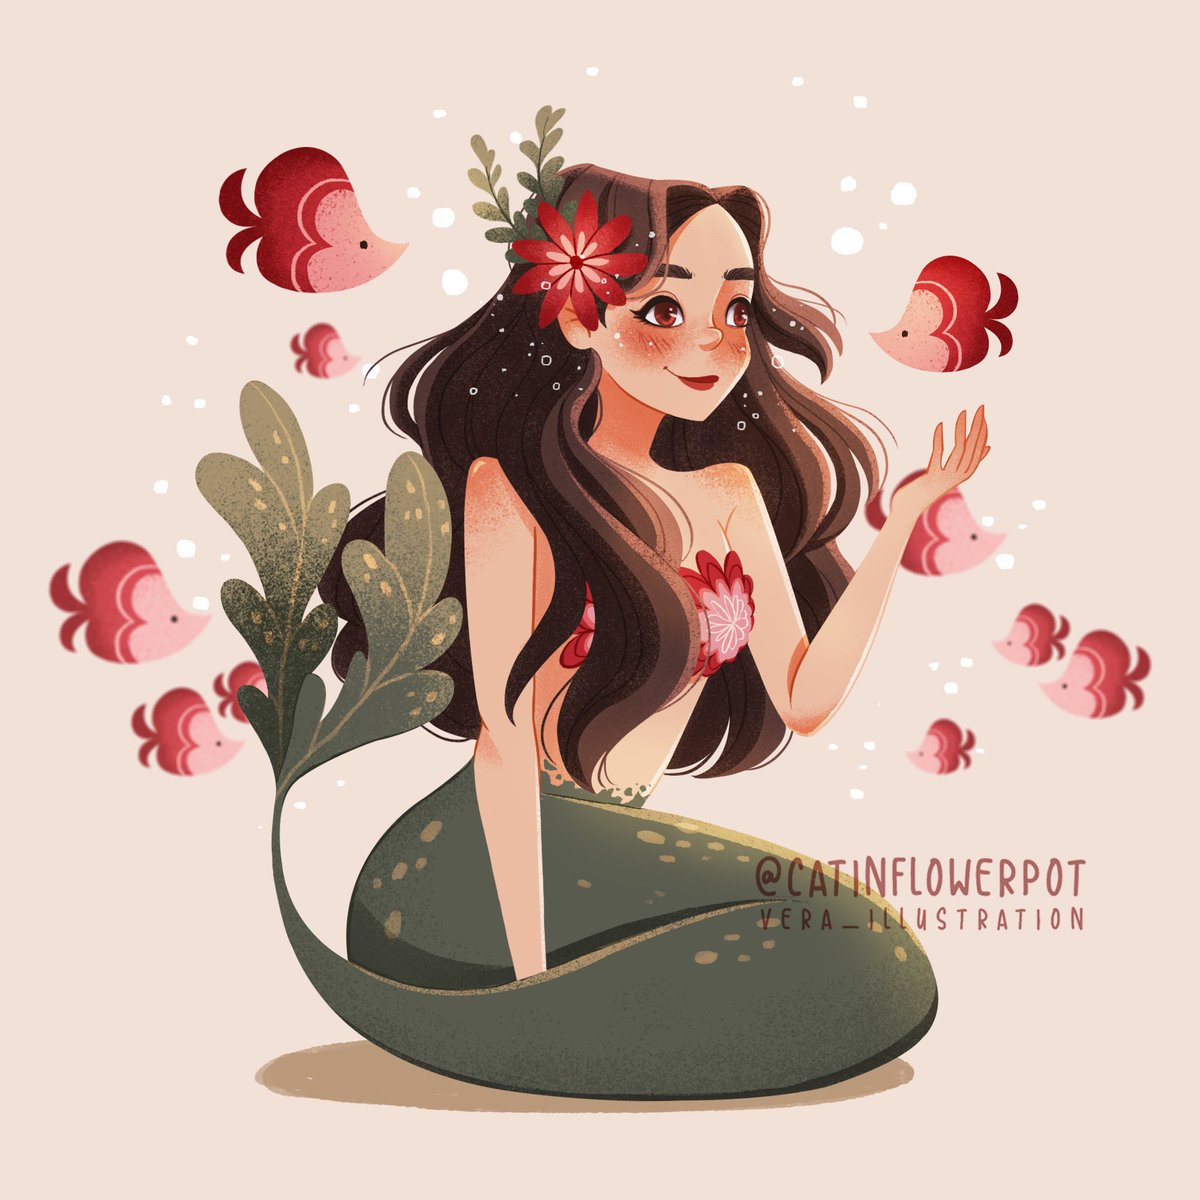 No new art lately. Sharing with you my #Mermay 2019 entries  There are 9 entries in total  <br>http://pic.twitter.com/94NJ6TPl5S